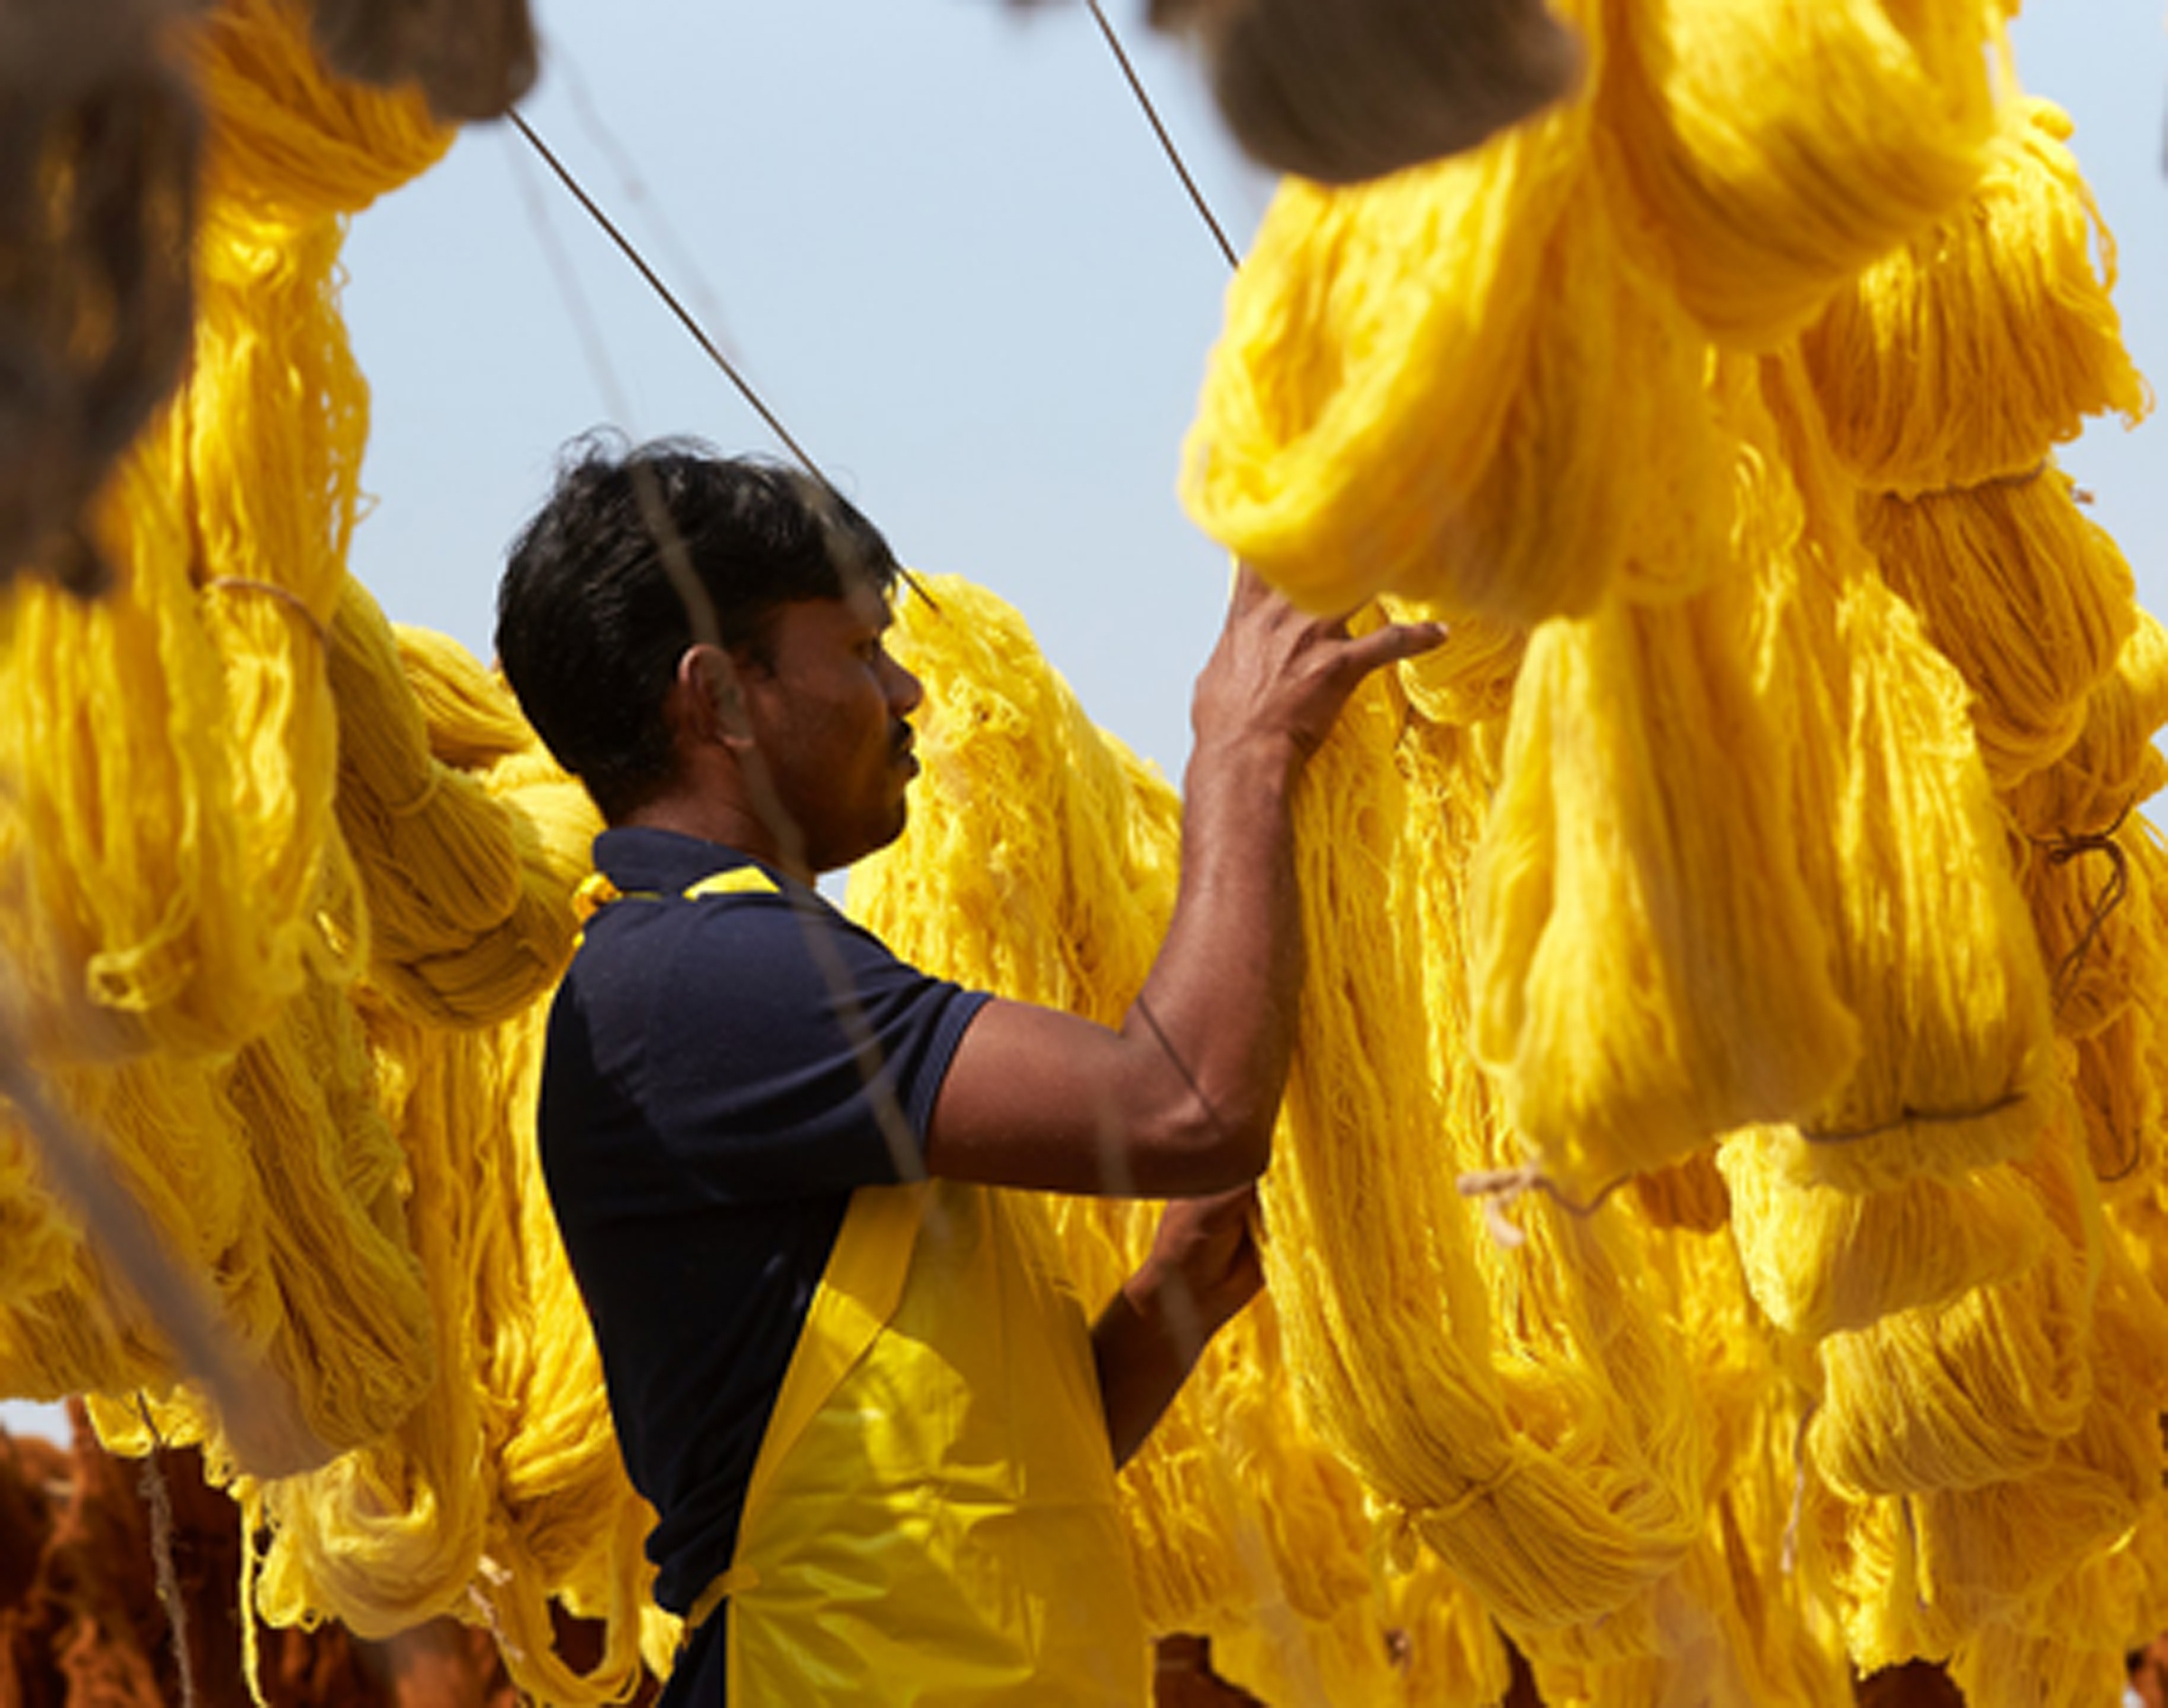 A man in a yellow apron stands in the middle of rows of yellow yarn hung out to dry in the sun.